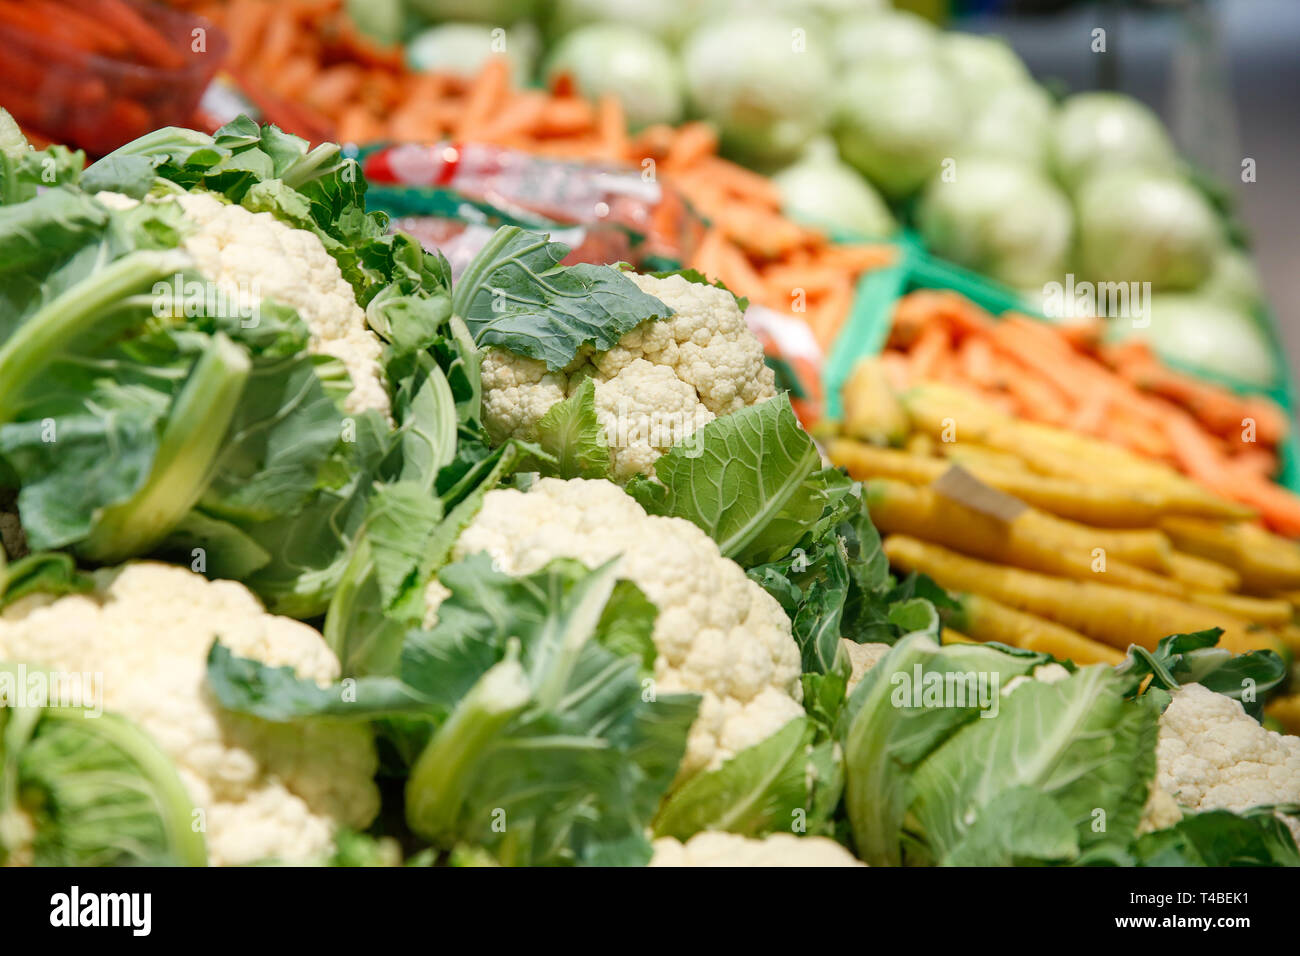 Unpacked, fresh vegetables in a self-service supermarket. Zero-waste movement and philosophy, sustainable trade and organic grocery concept. - Stock Image